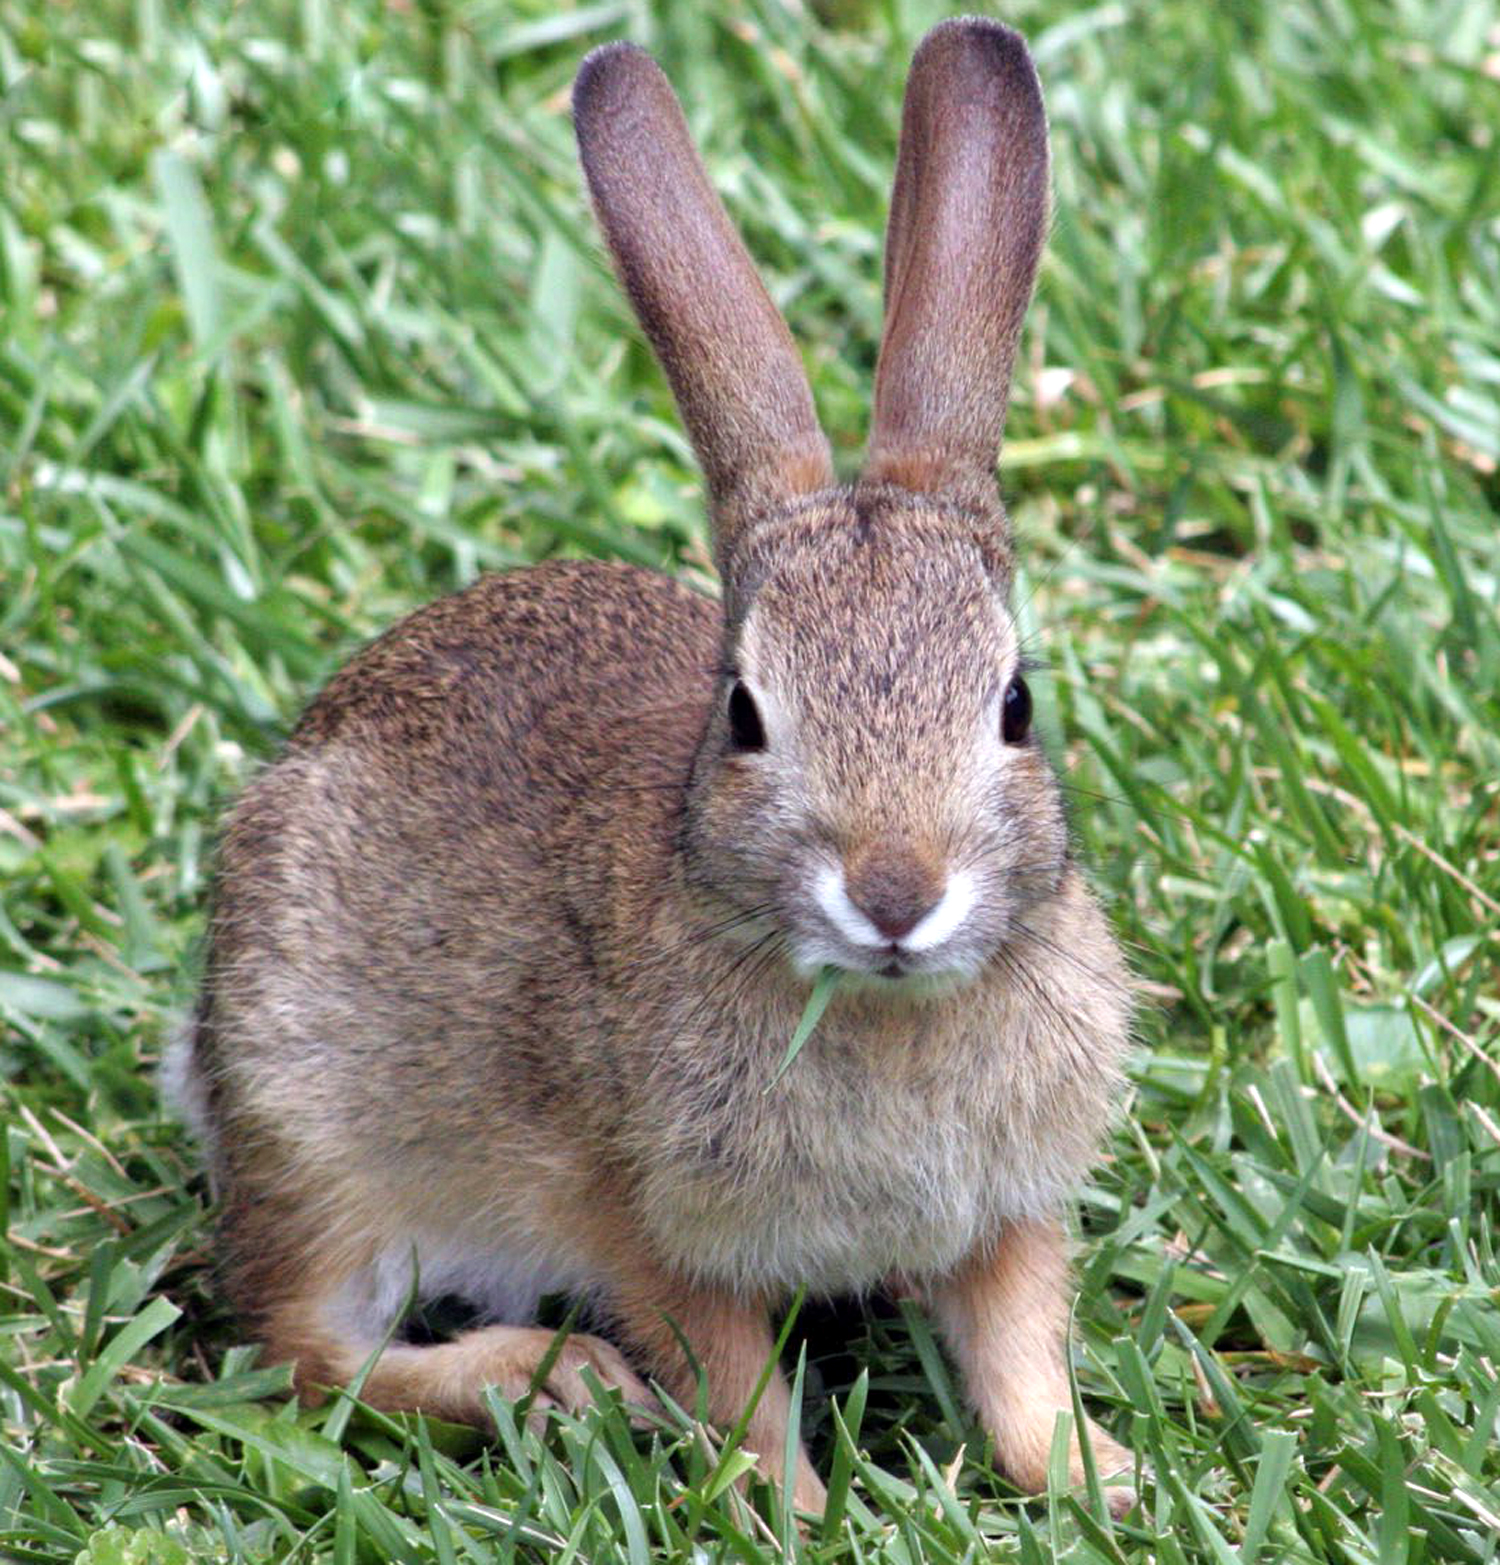 rabbit farming, commercial rabbit farming, rabbit farming business, commercial rabbit farming business, rabbit farming in India, rabbit farming business in India